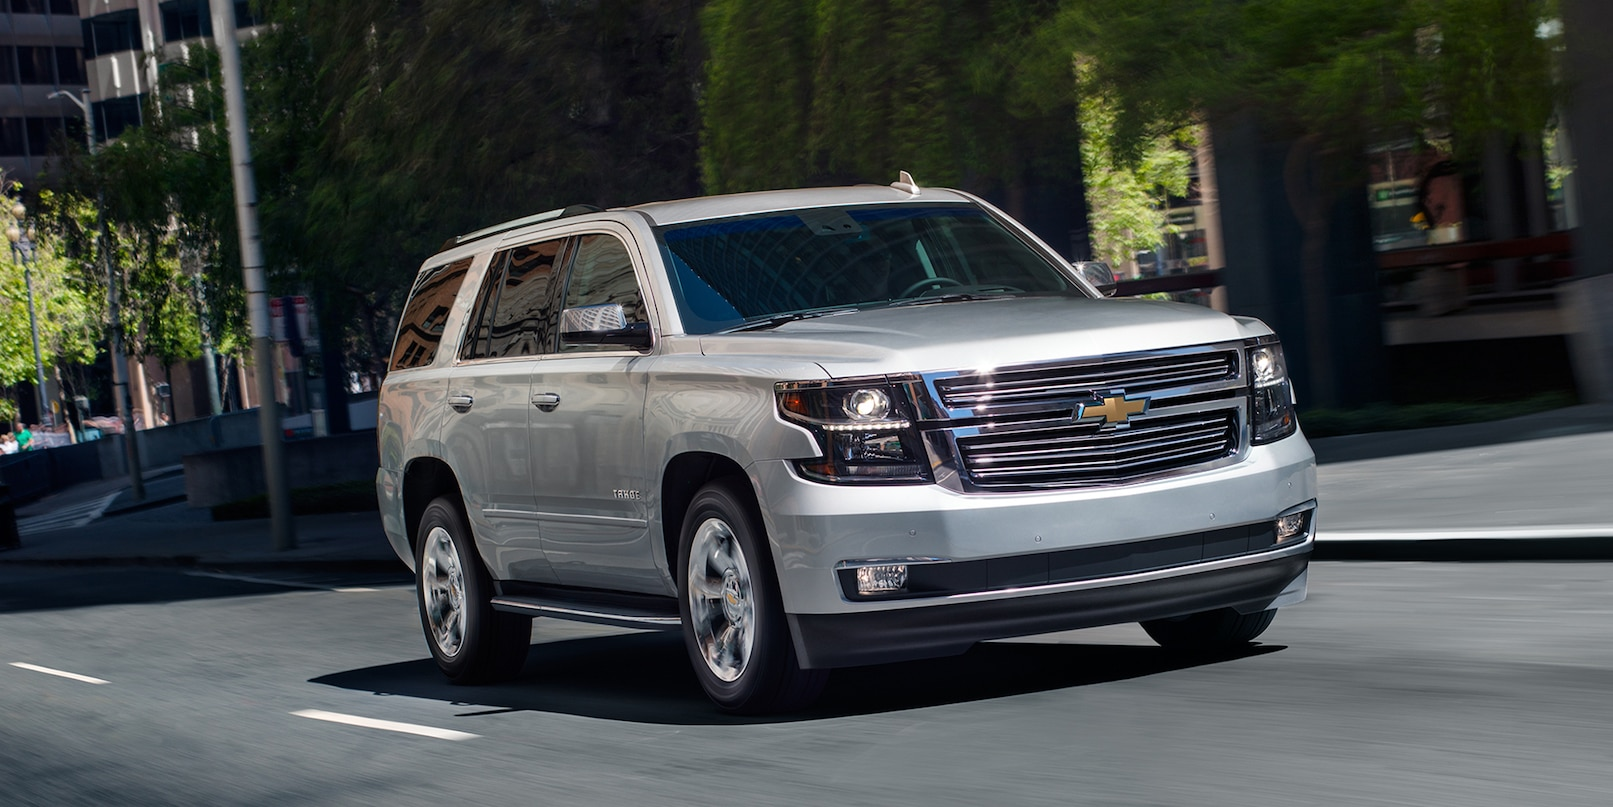 2019 Chevrolet Tahoe for Sale near Fairmont, MN